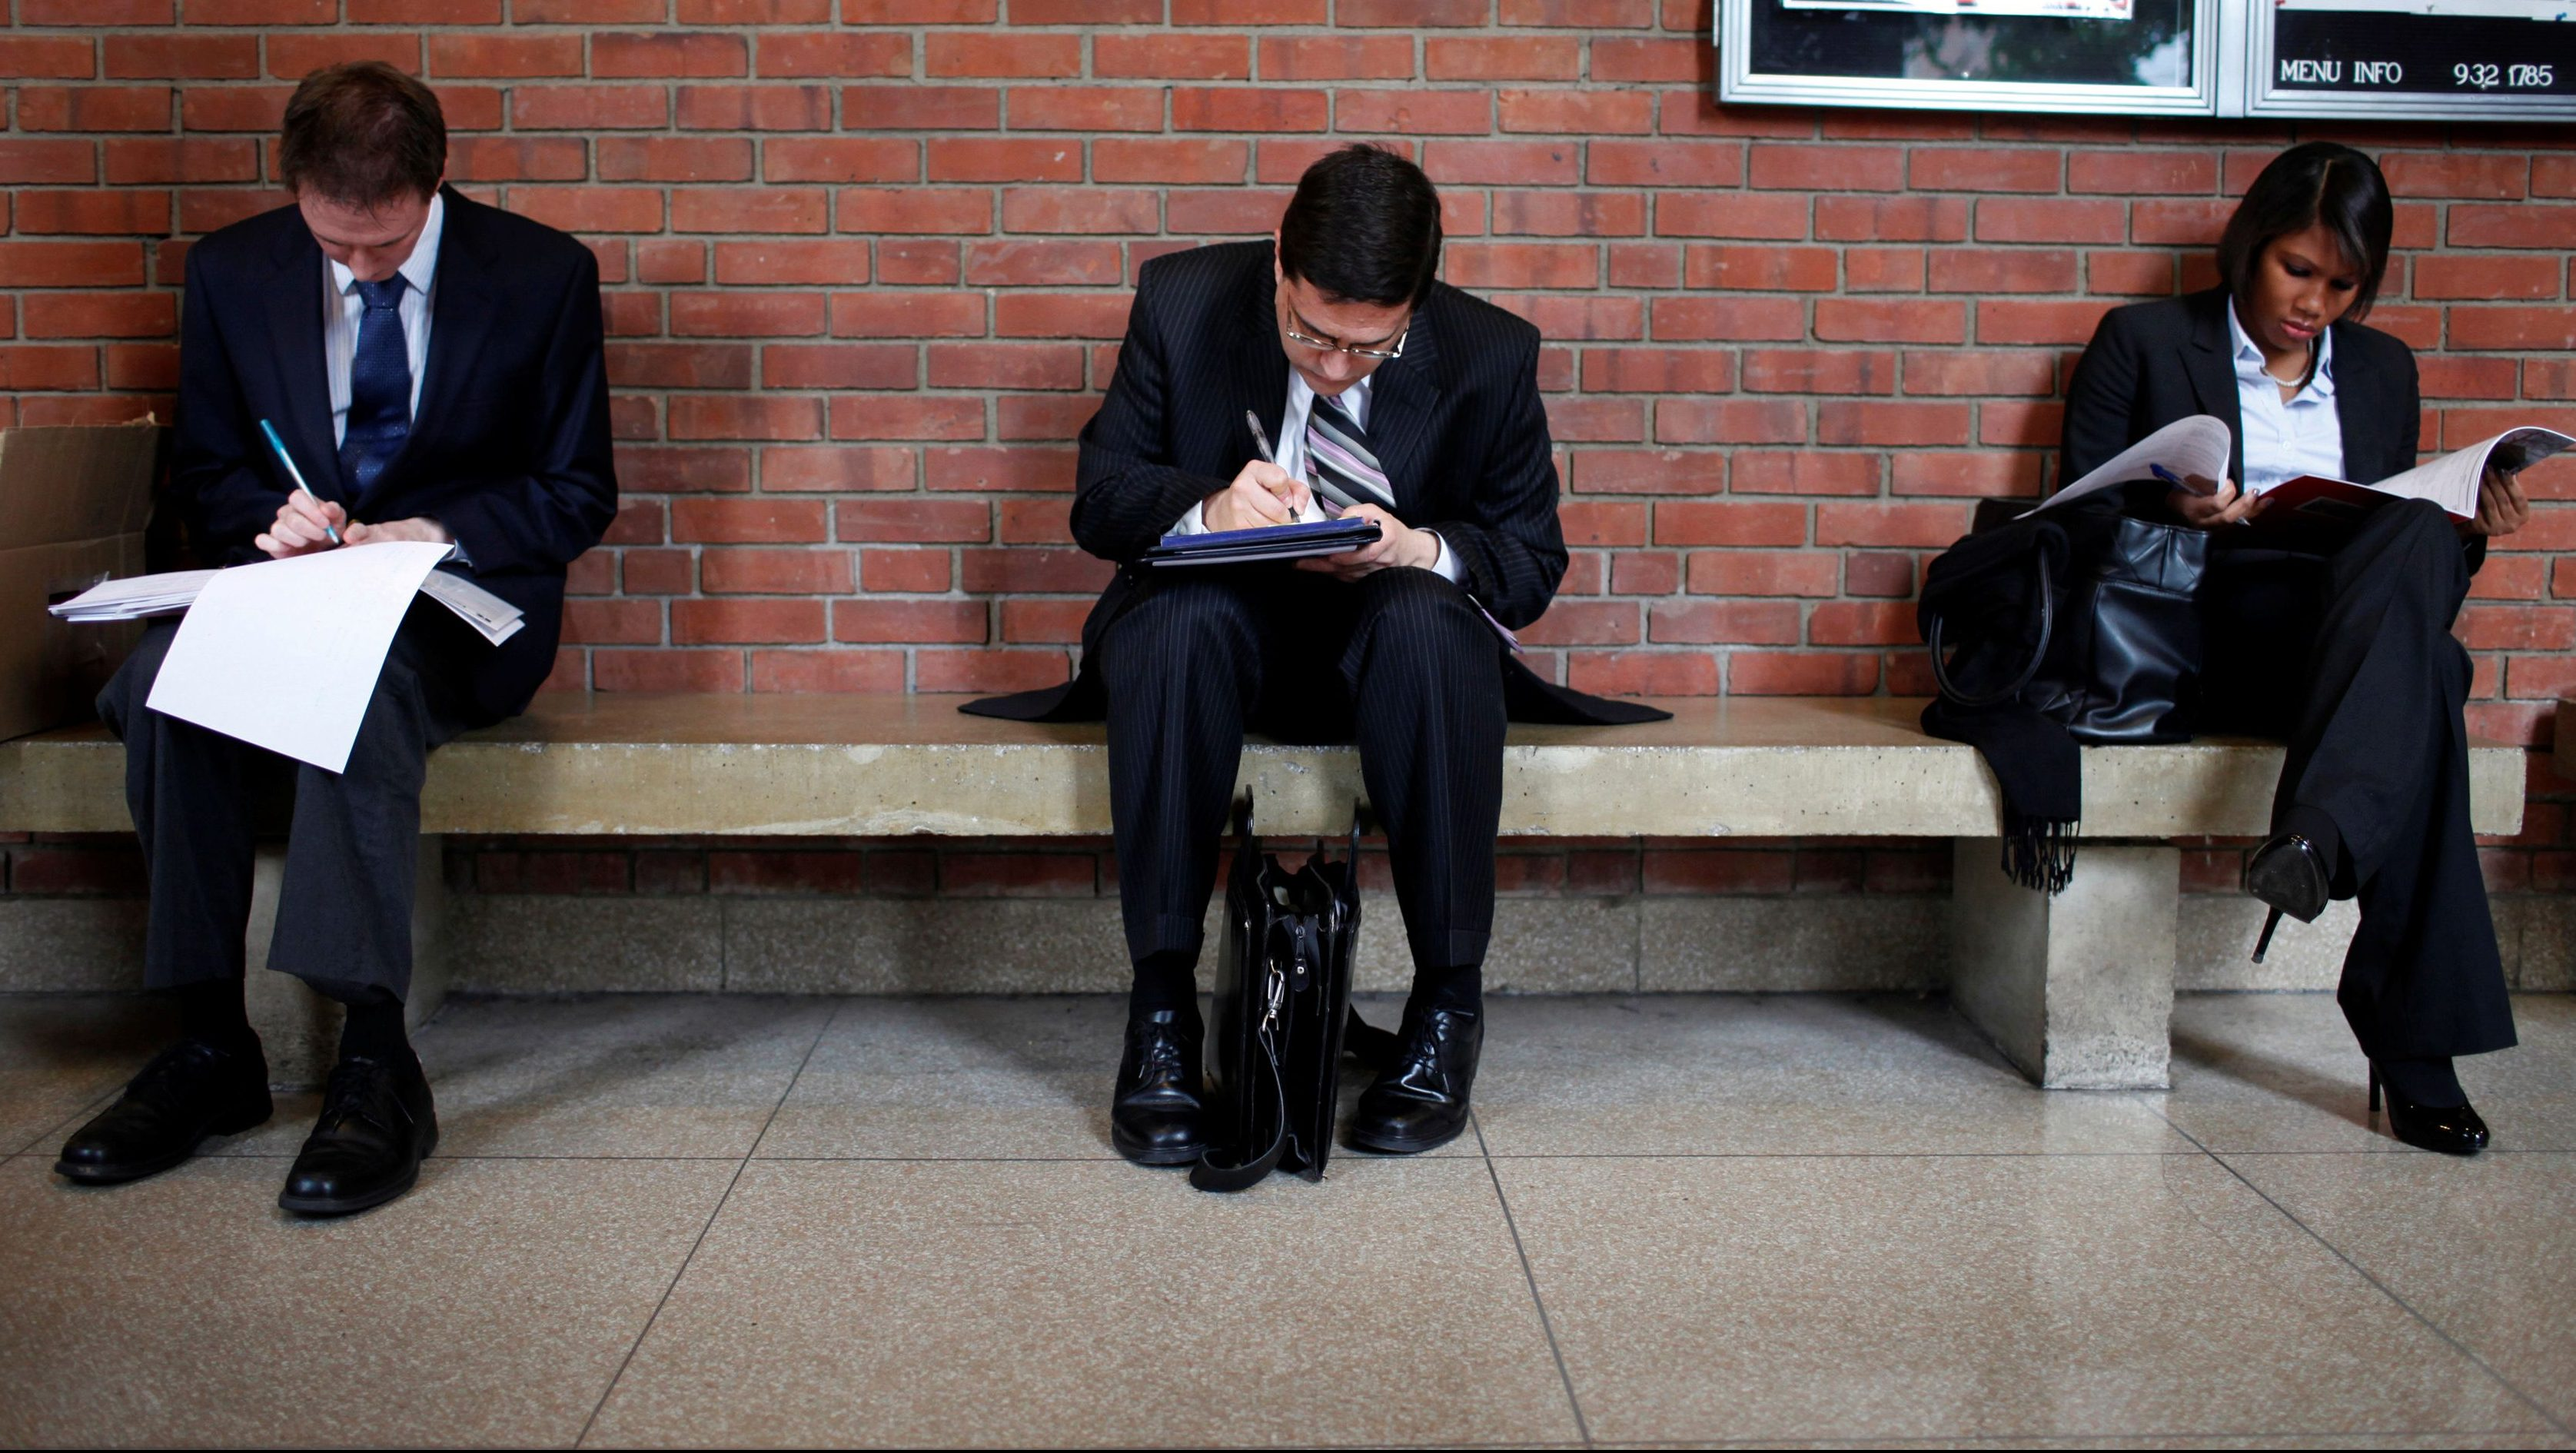 Job interview tips for introverts